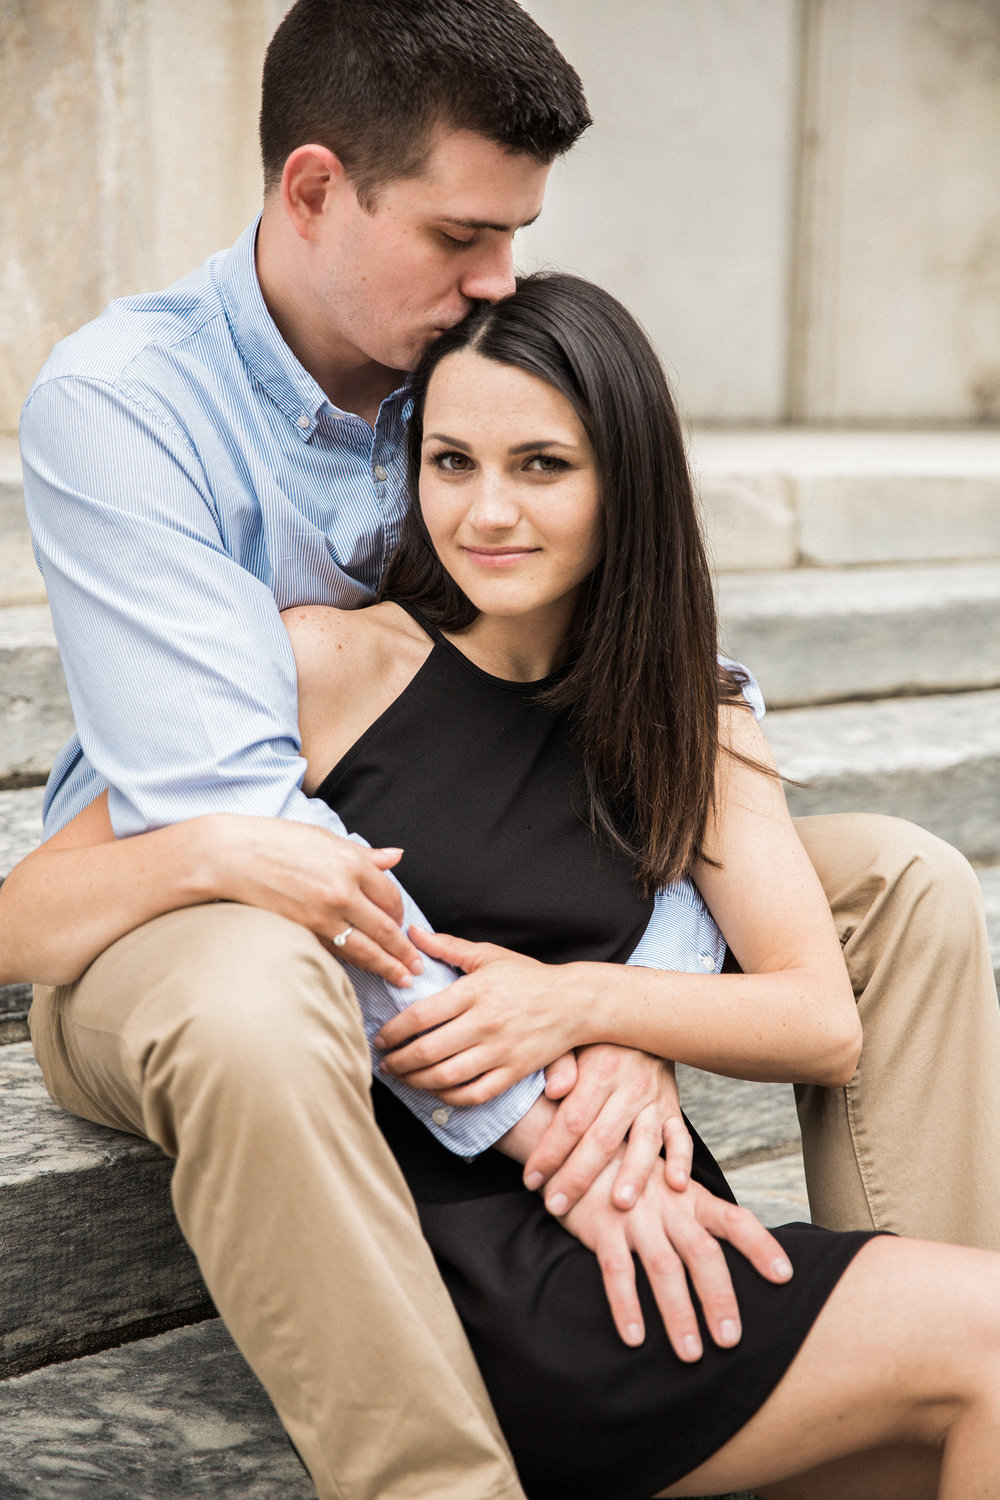 HNP_Jordan-Jessica-Old-City-Philadelphia-Film-Photography-Engagement-Session-006.jpg